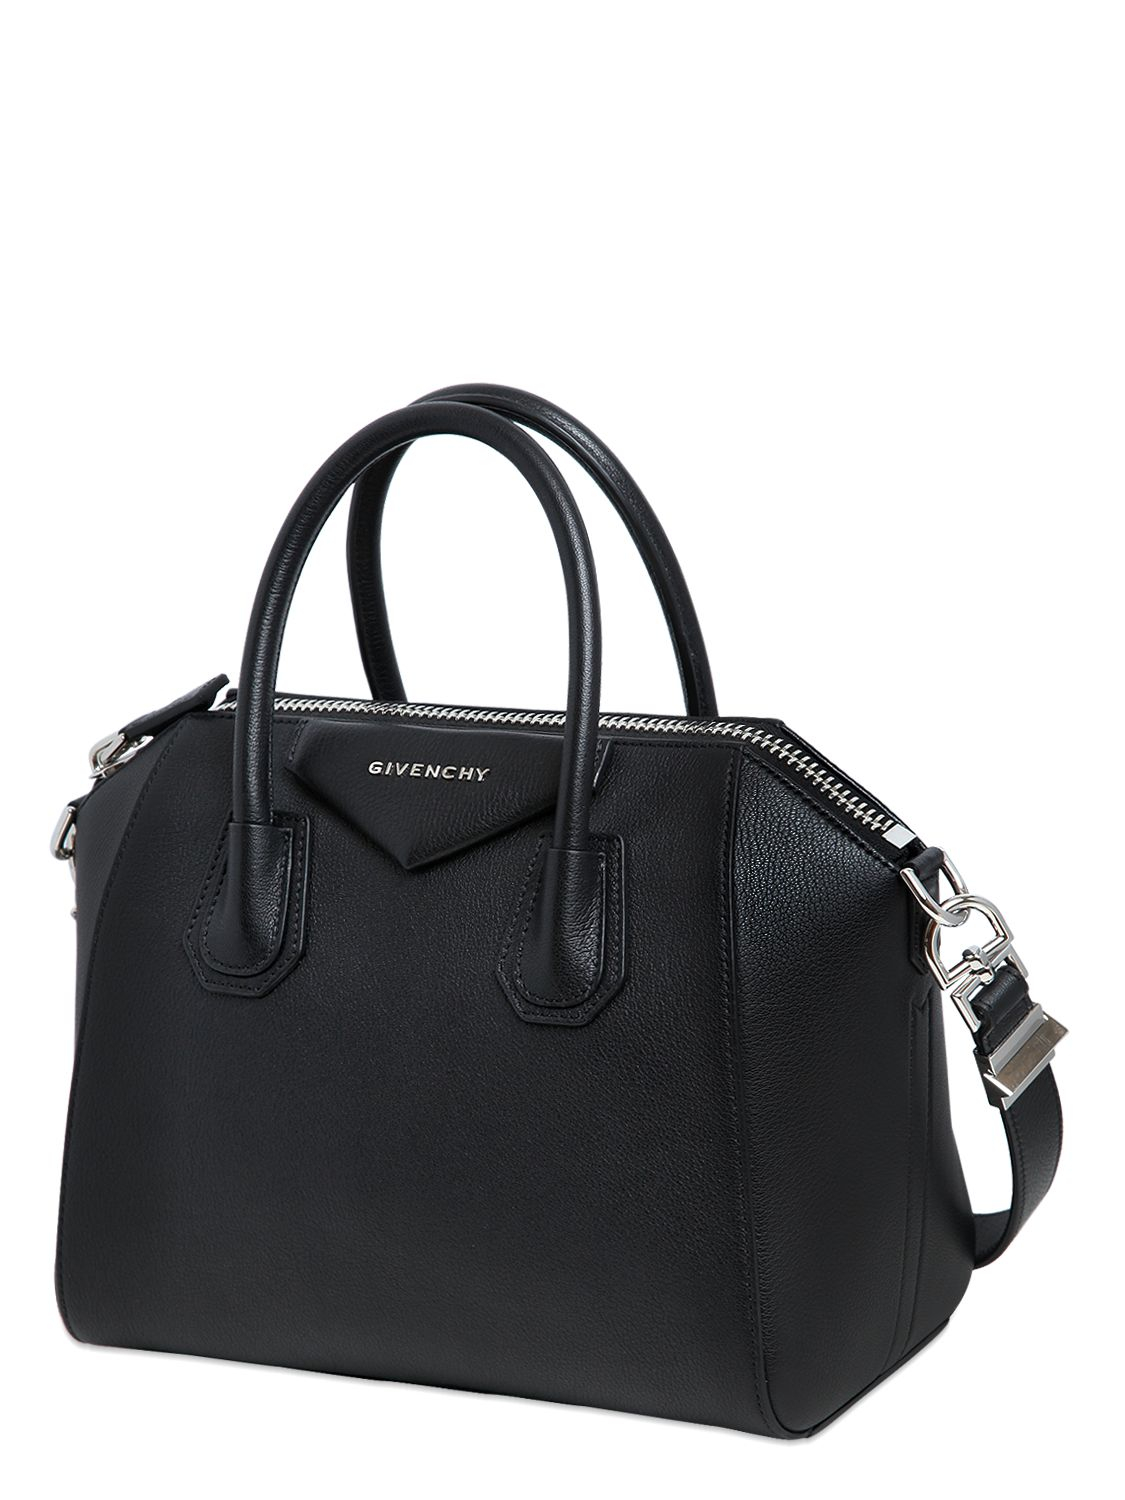 f581c383d8 Givenchy Small Antigona Grained Leather Bag in Black - Lyst